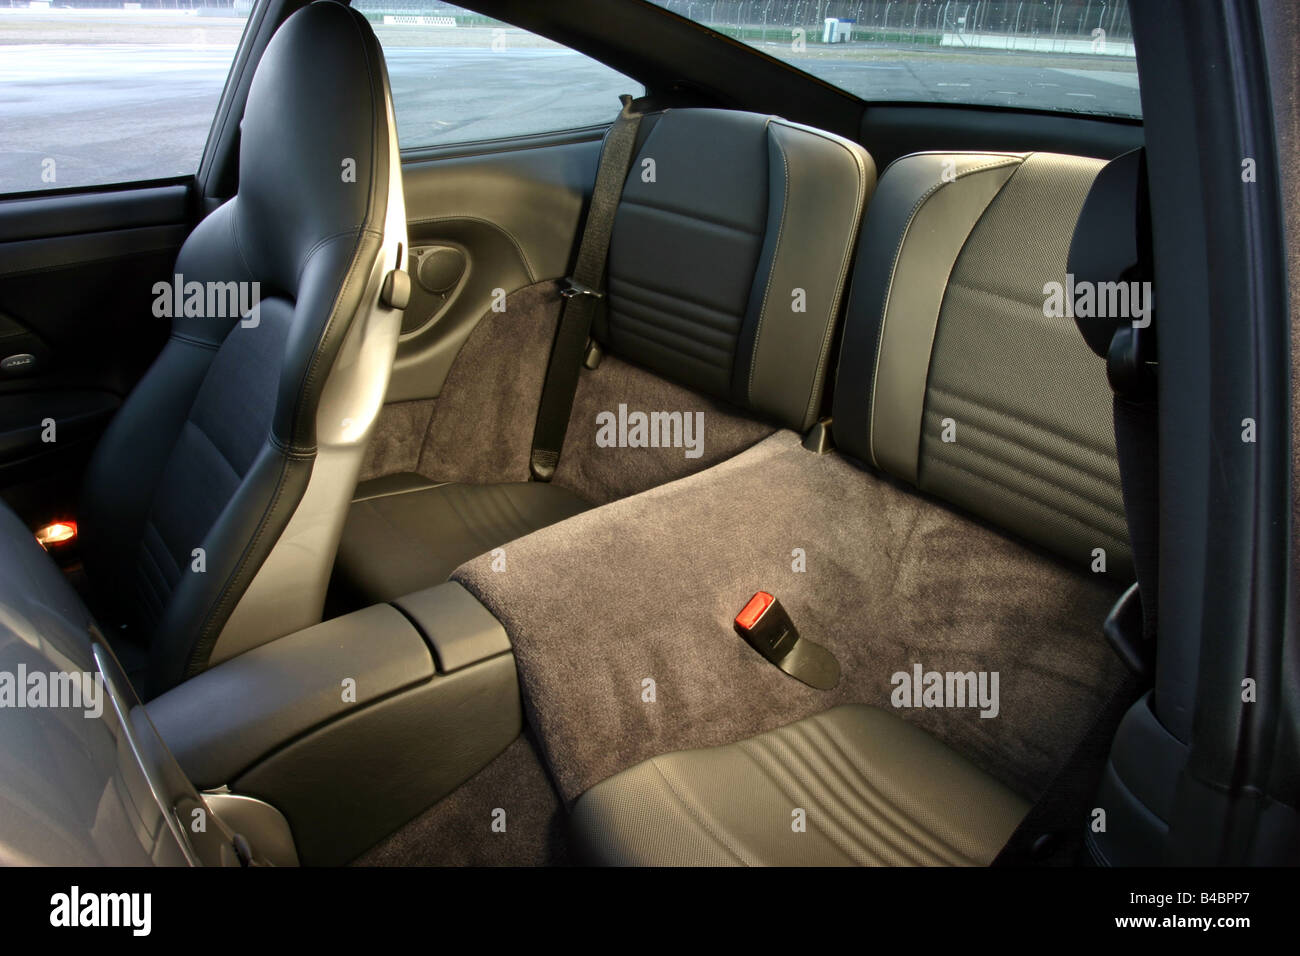 Car Porsche 911 40 Years Model Year 2003 Silver Anthracite Stock Photo Alamy